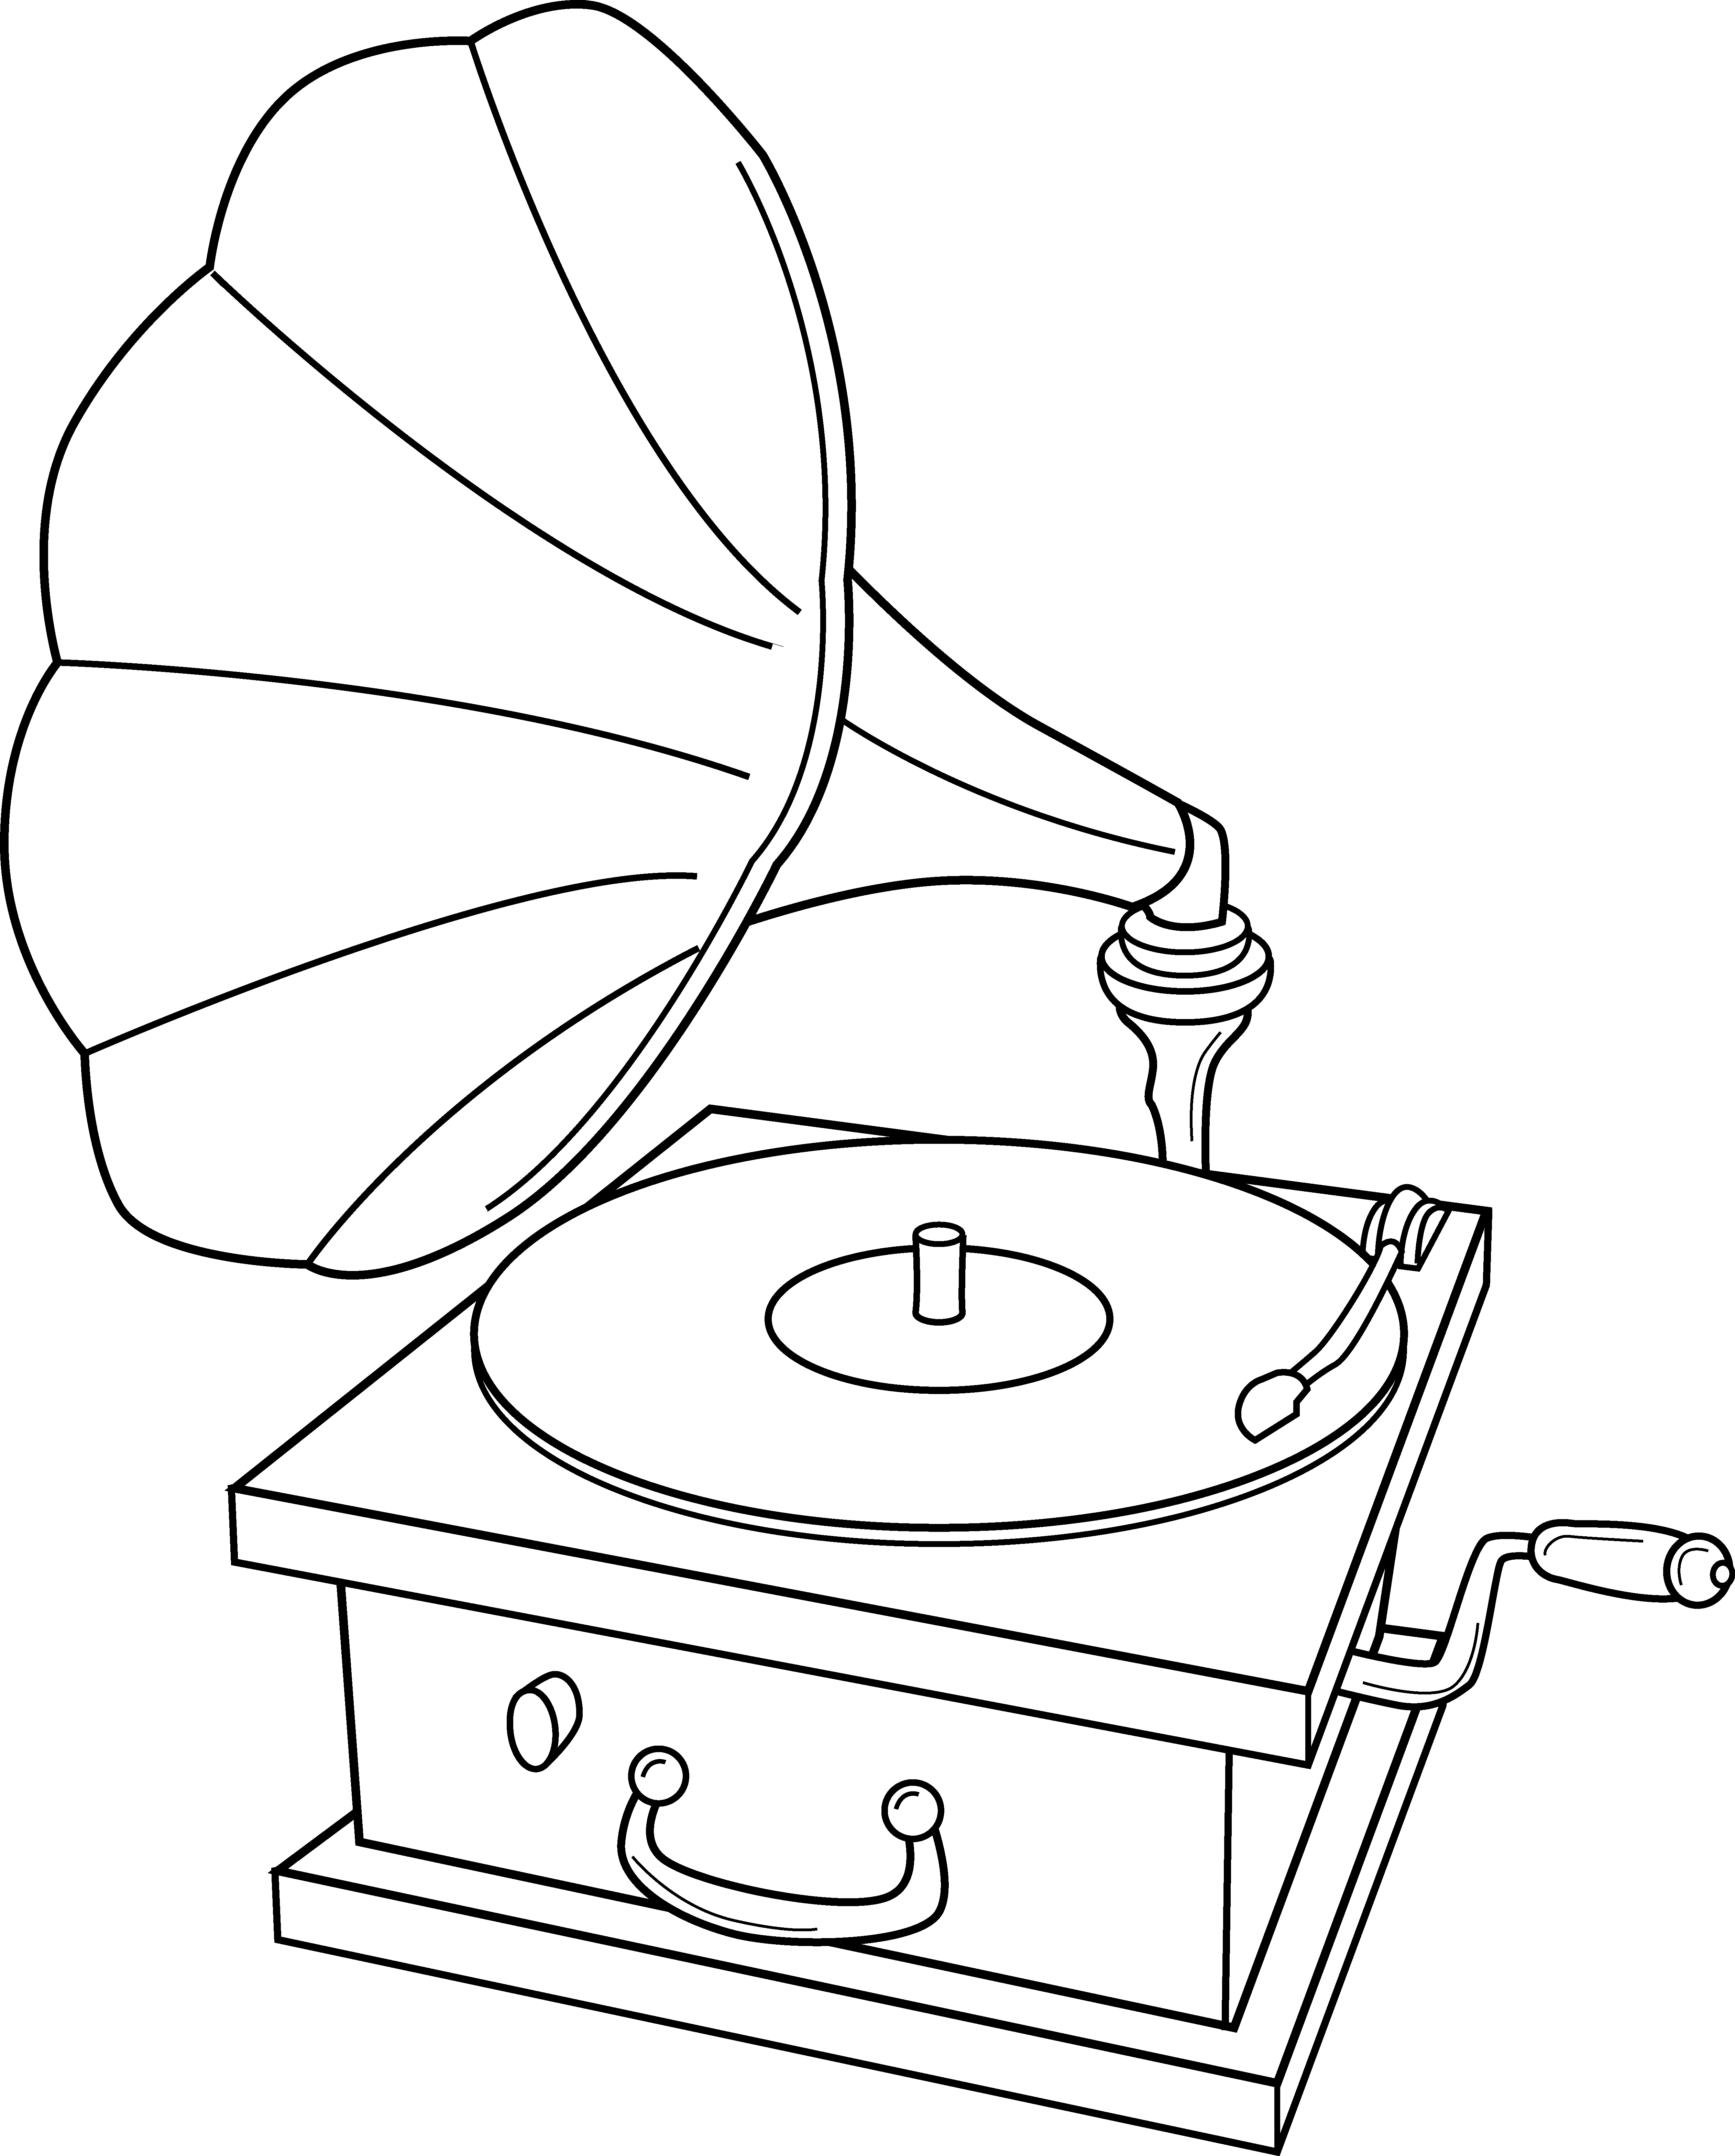 Record player clipart free vector black and white Record Player Coloring Page - Free Clip Art vector black and white